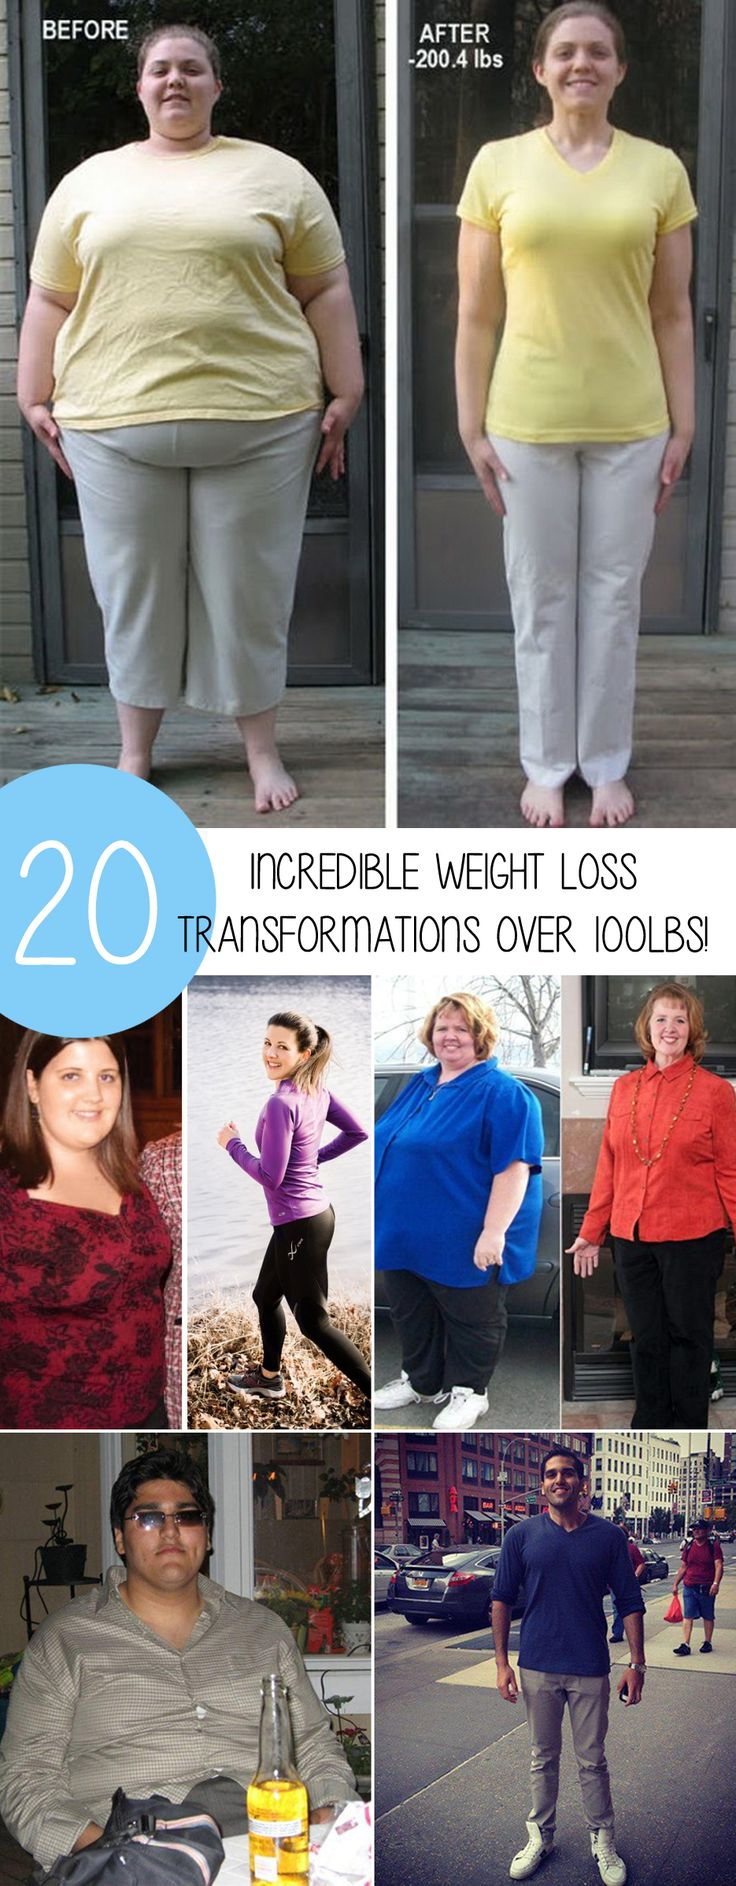 20 Amazing Weight Loss Transformations Losing Over 100lbs!//In need of a detox? 10% off using our discount code 'Pin10' at www.ThinTea.com.au